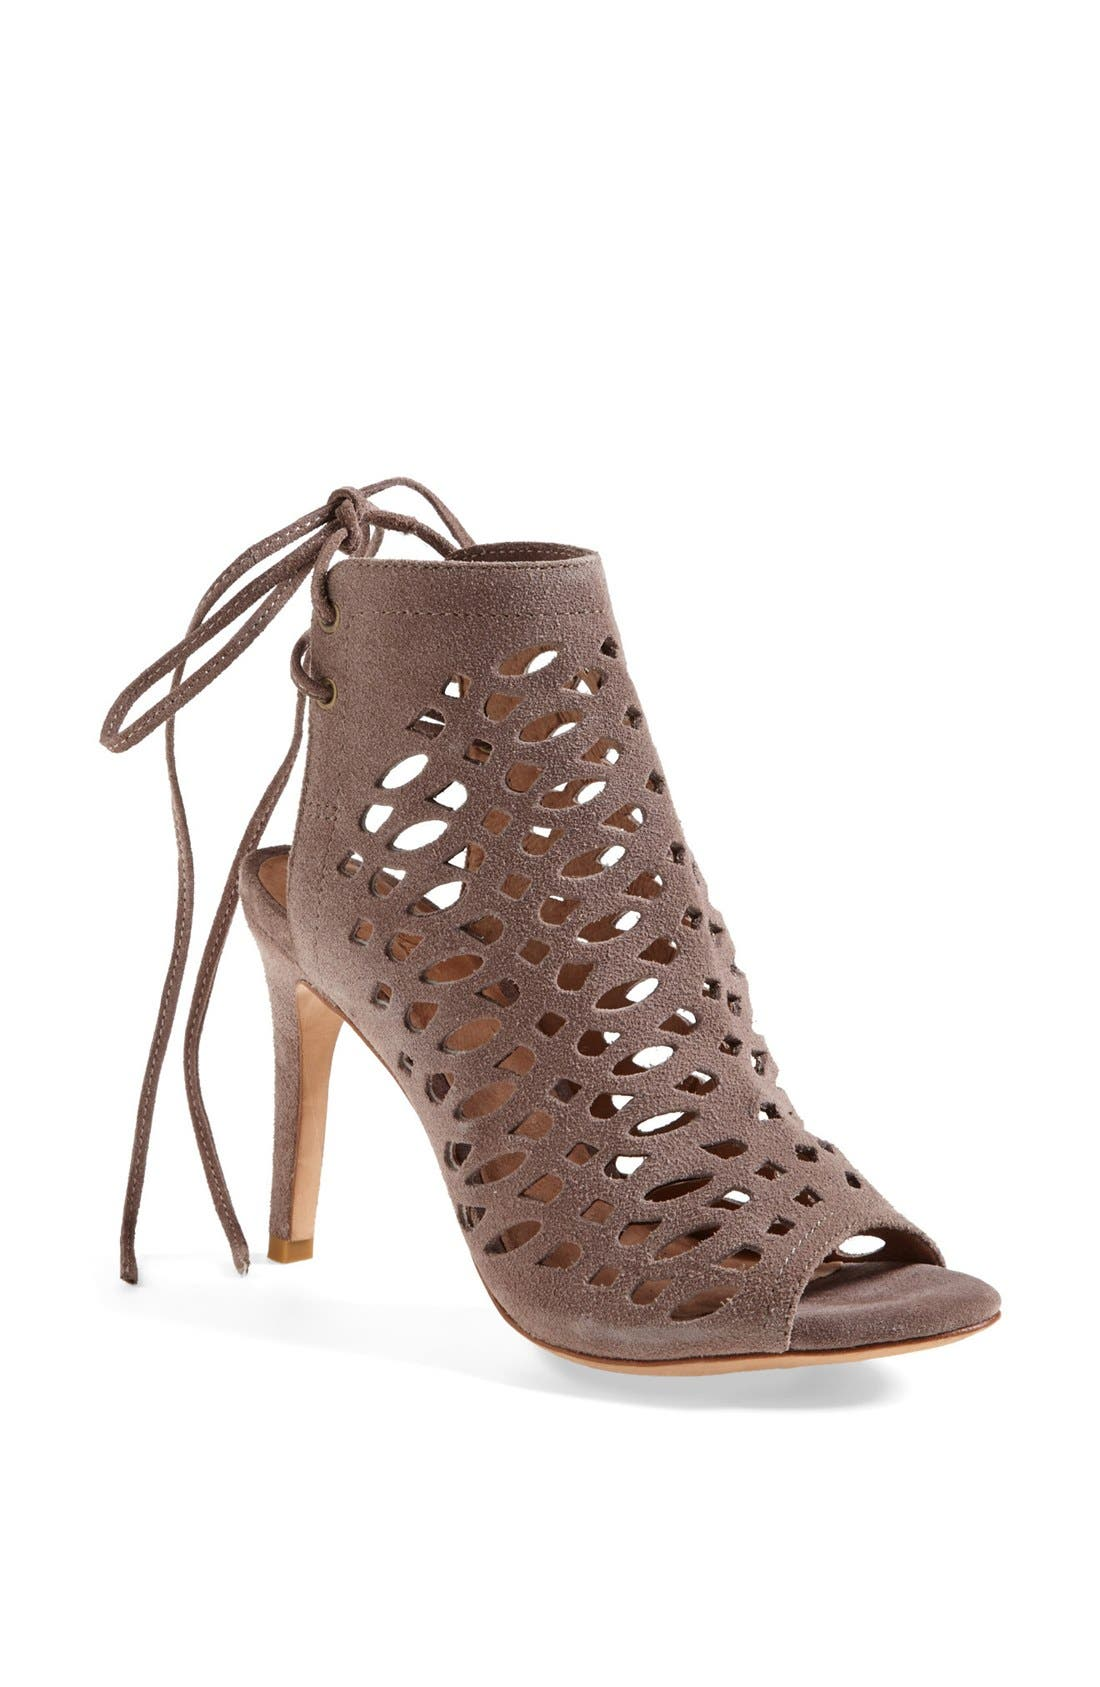 Alternate Image 1 Selected - Joie 'Clayton' Sandal